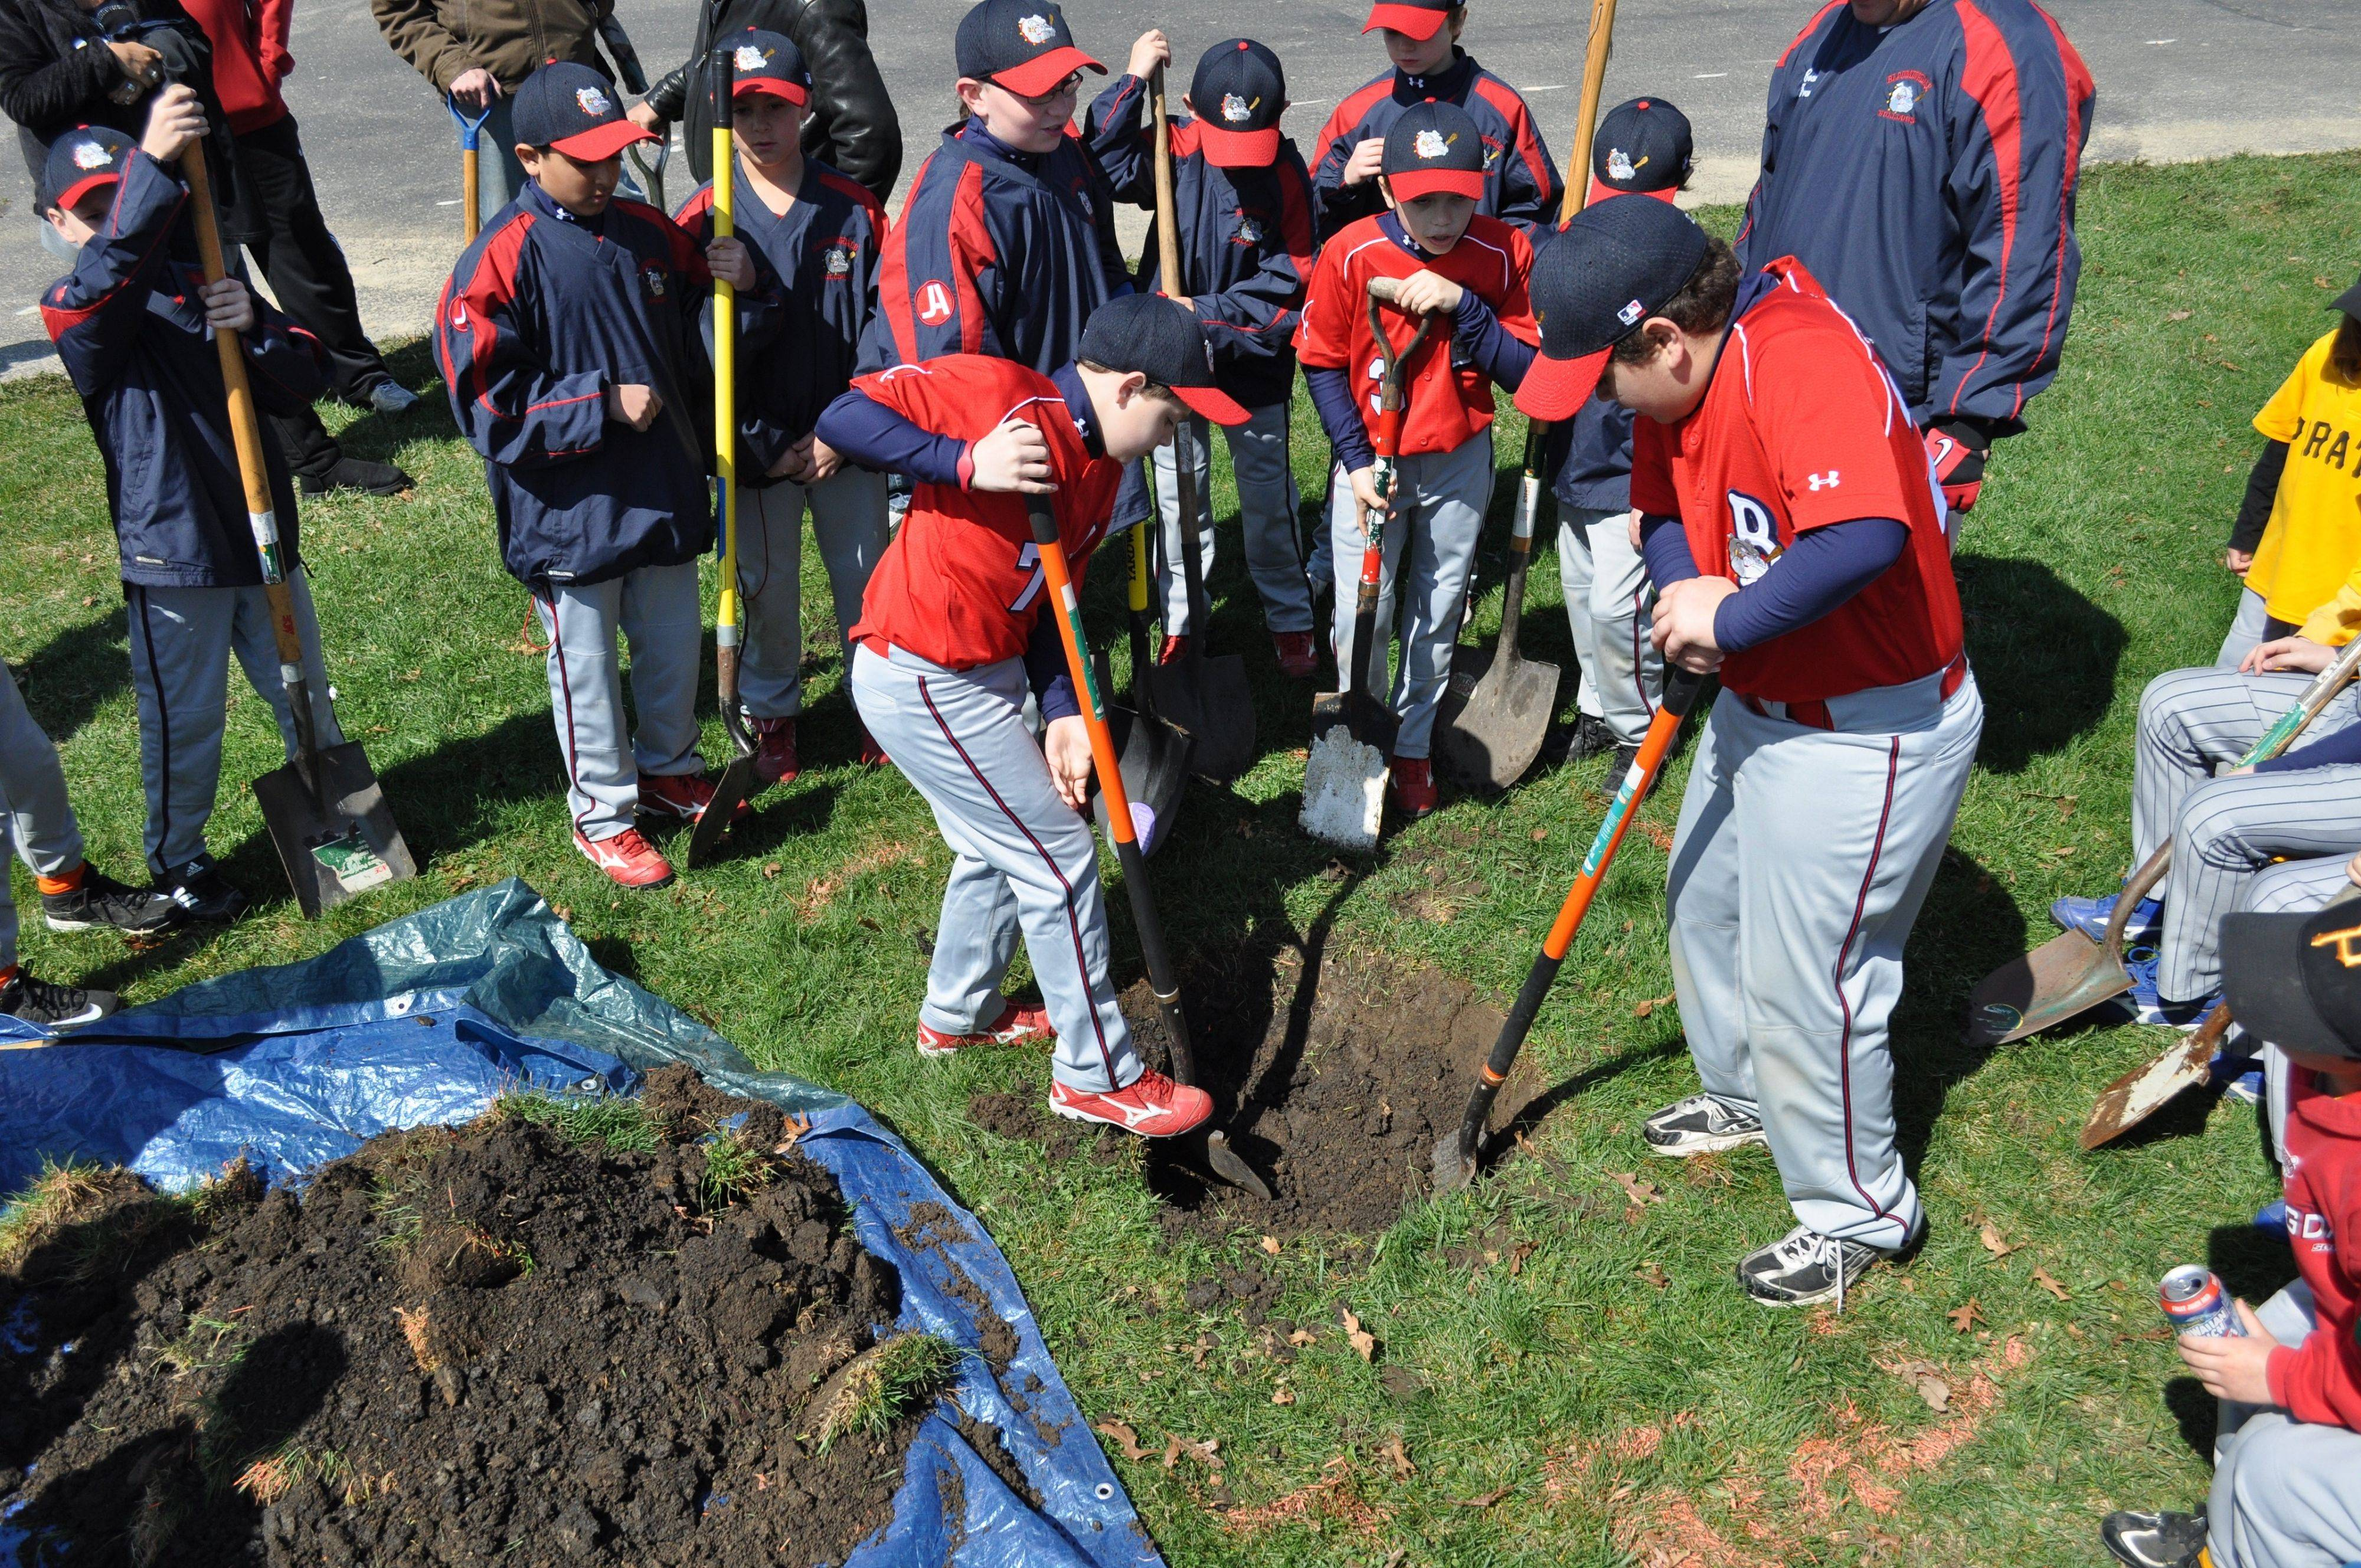 Members of the Bloomingdale Bulldogs traveling baseball team dig a hole where a flagpole memorial was placed in honor of Sgt. Jean Claude Nolan.